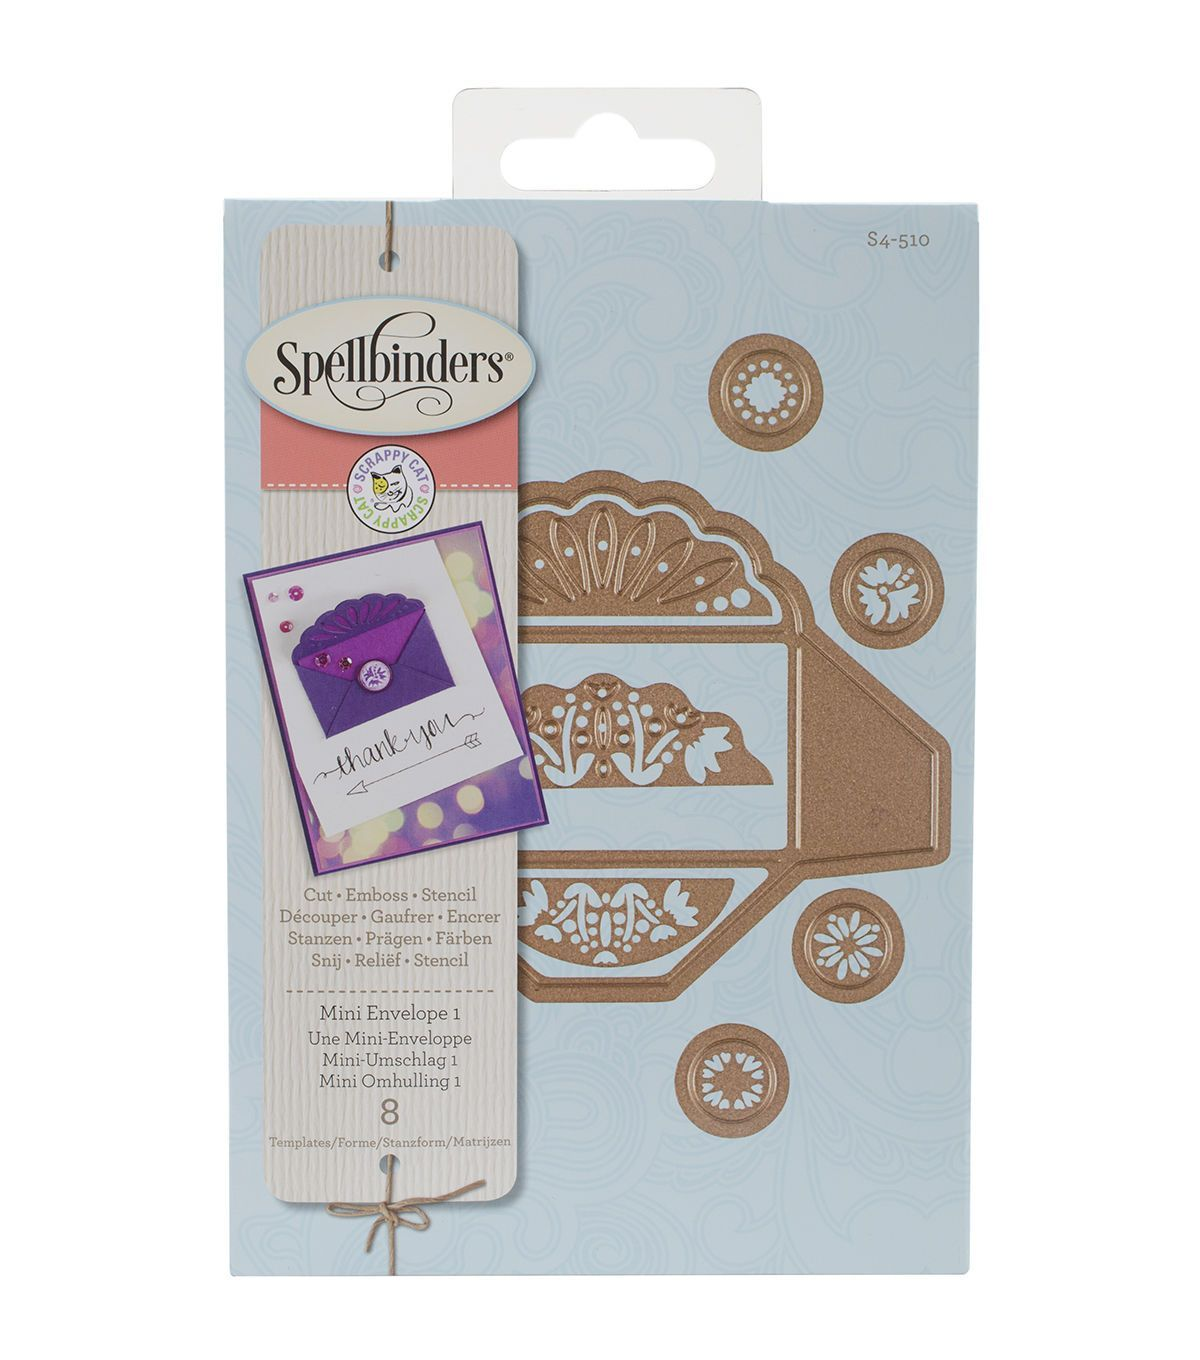 Make pretty die-cut embellishments for a variety of craft projects using the Spellbinders Designer Dies. These cute and eye-catching decorative dies are compatible with most brands of die-cutting syst